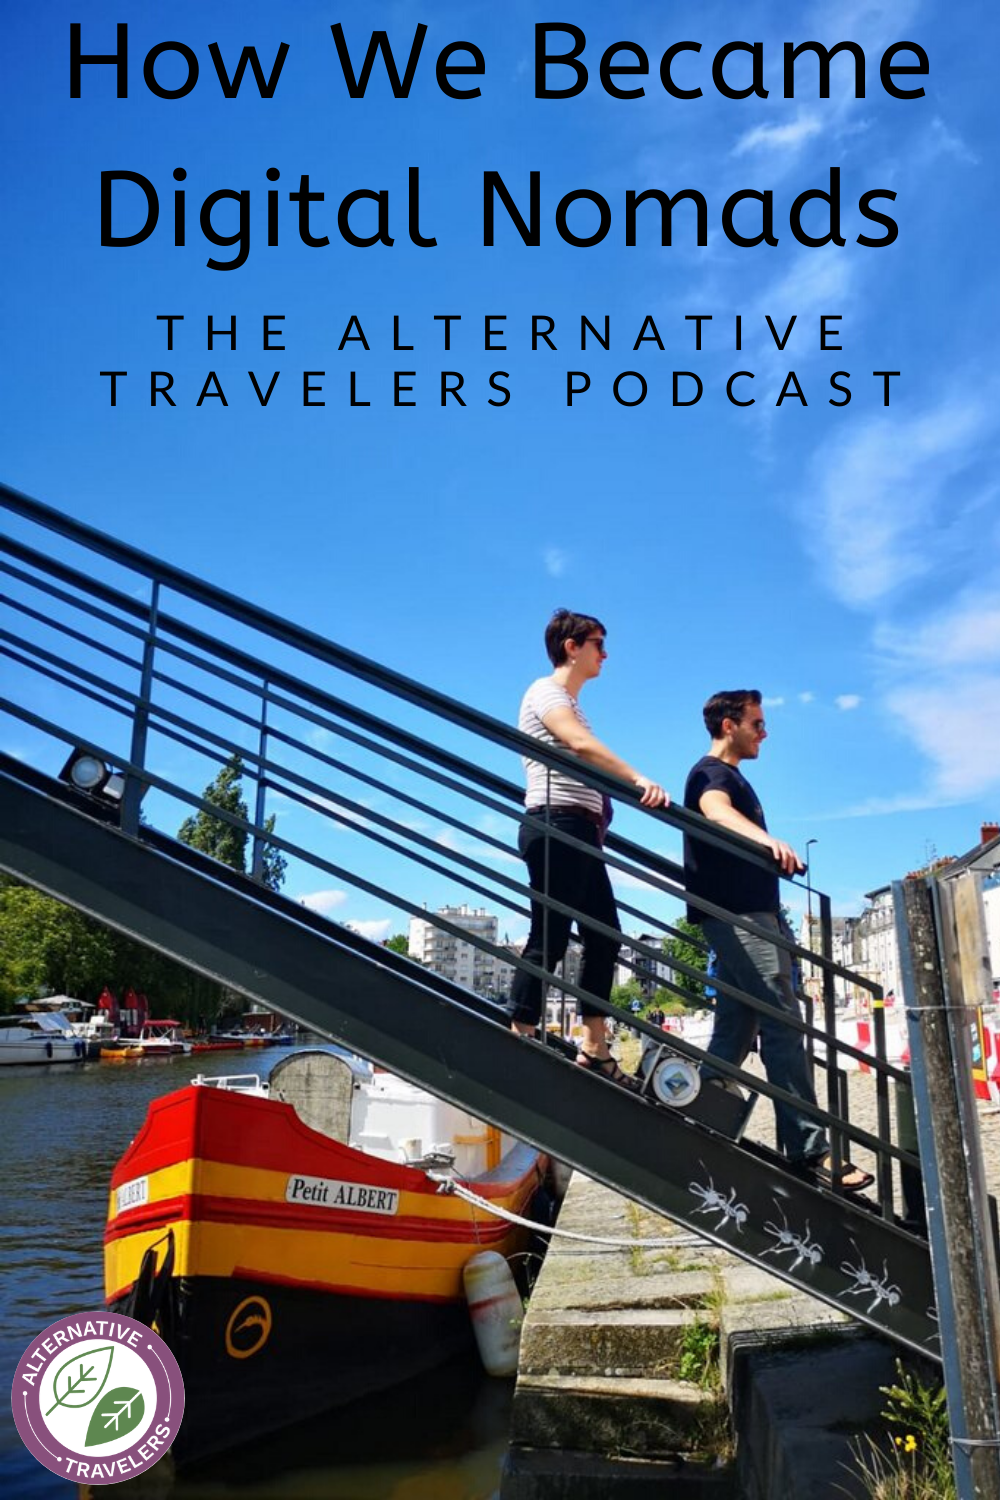 Digital nomad stories: how we became digital nomads, how we started house sitting, travel inspiration, and much more! Listen to the first episode of the Alternative Travelers podcast to learn more!